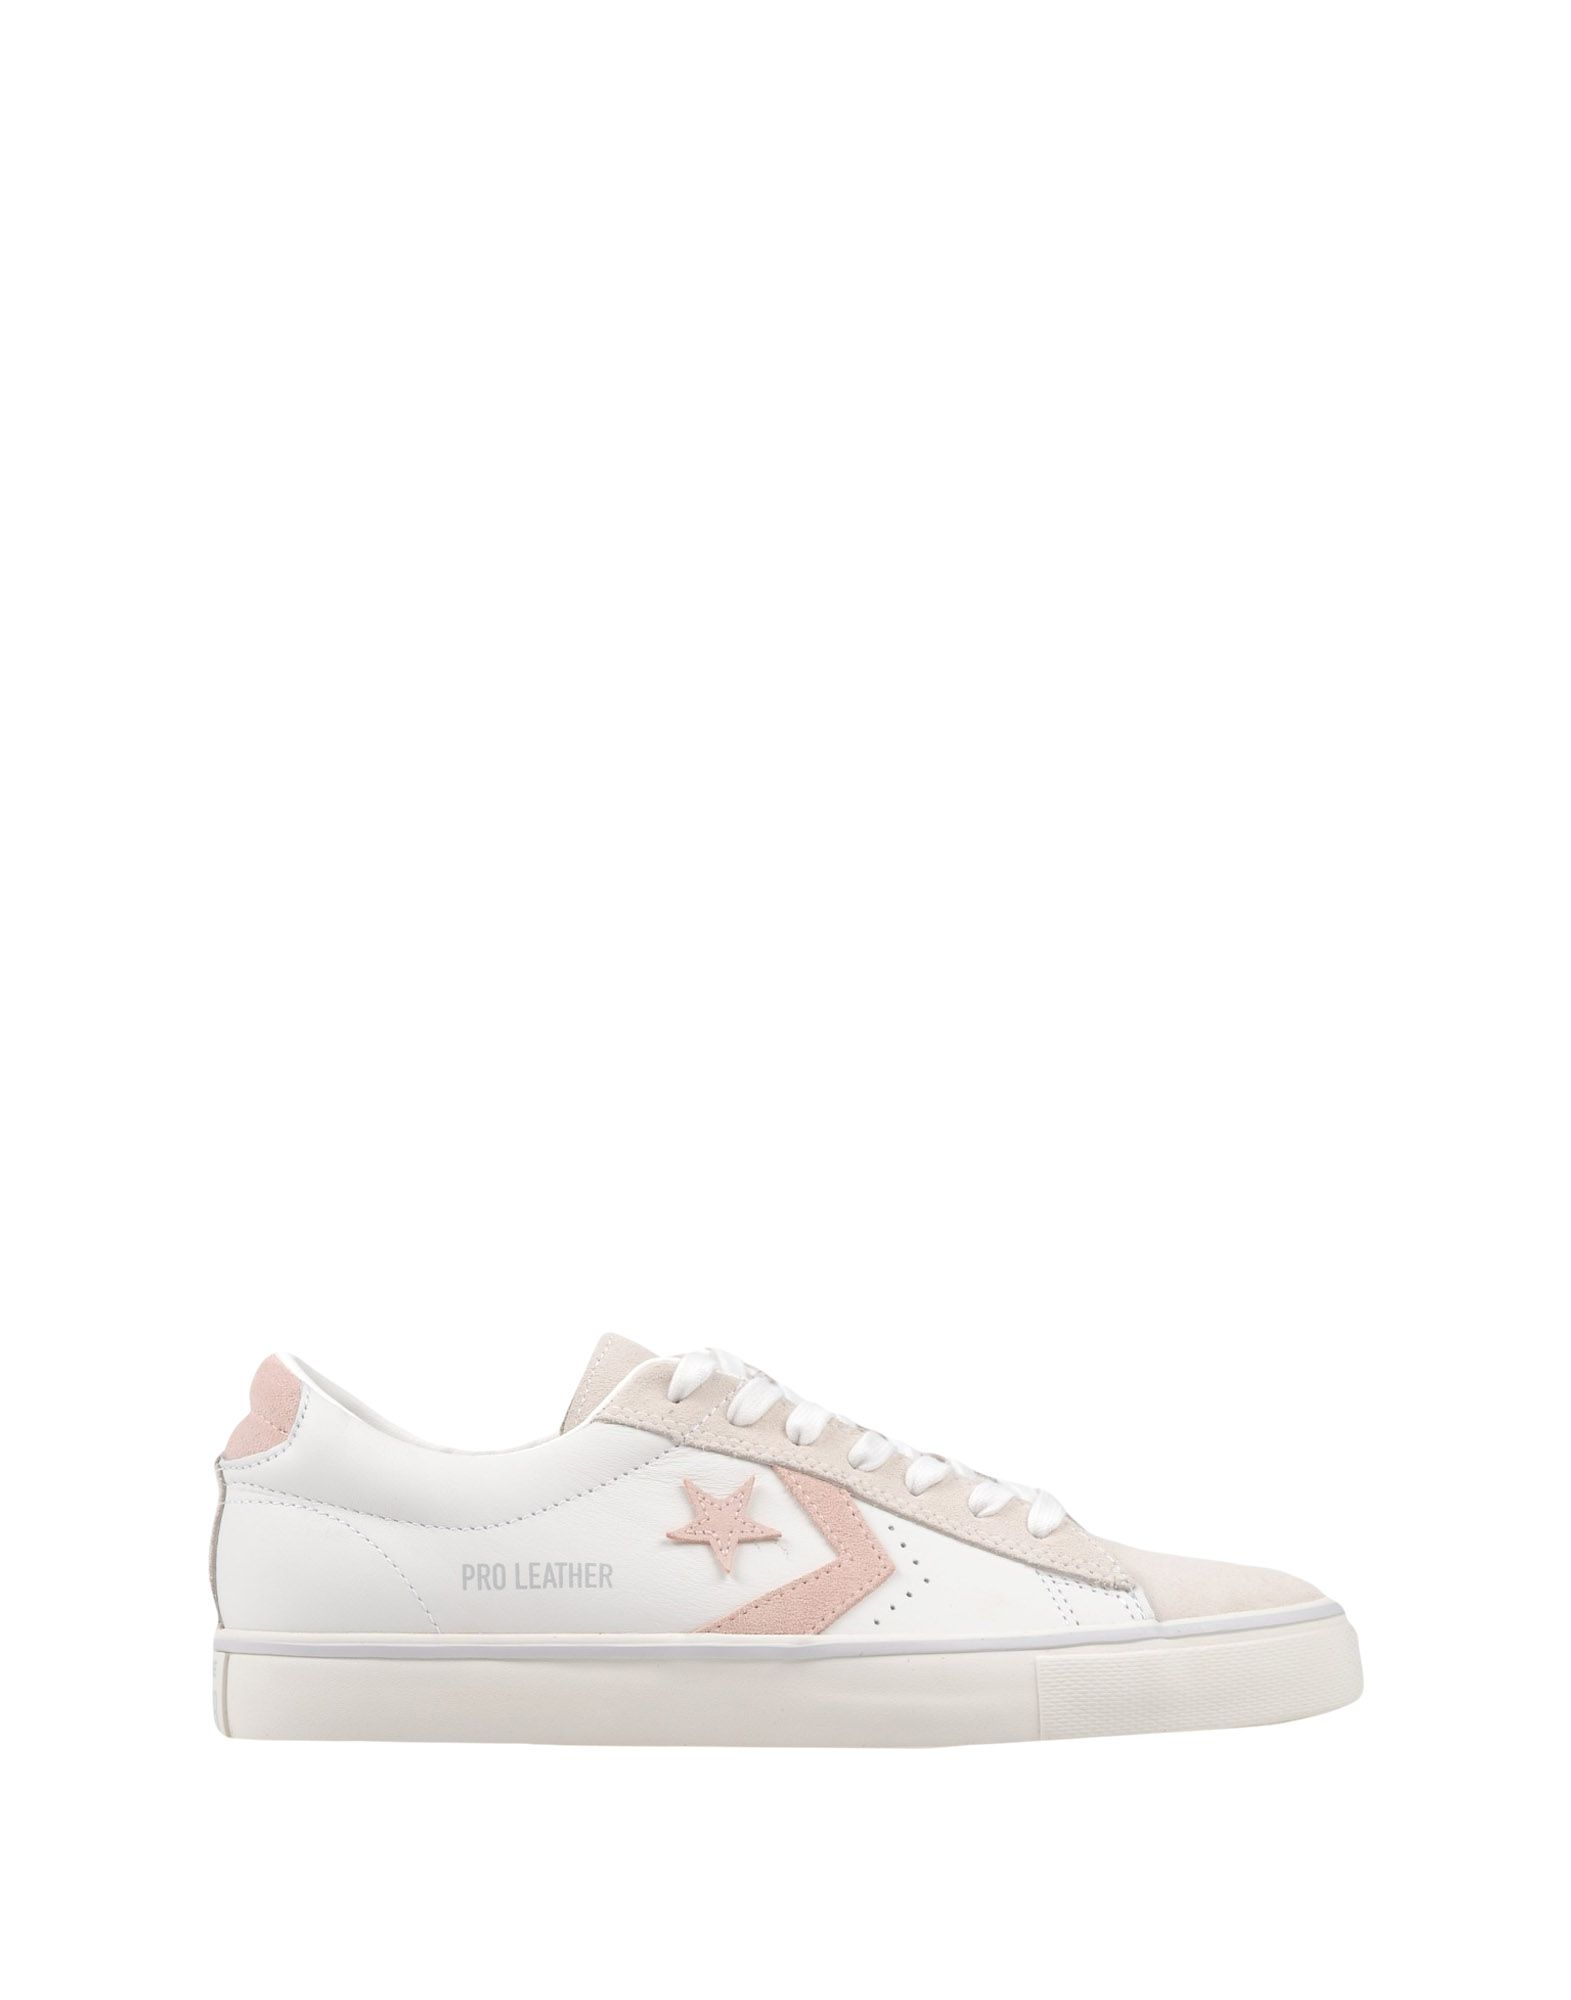 Sneakers Converse All Star Pro Leather Vulc Ox Leather/Suede - Femme - Sneakers Converse All Star sur